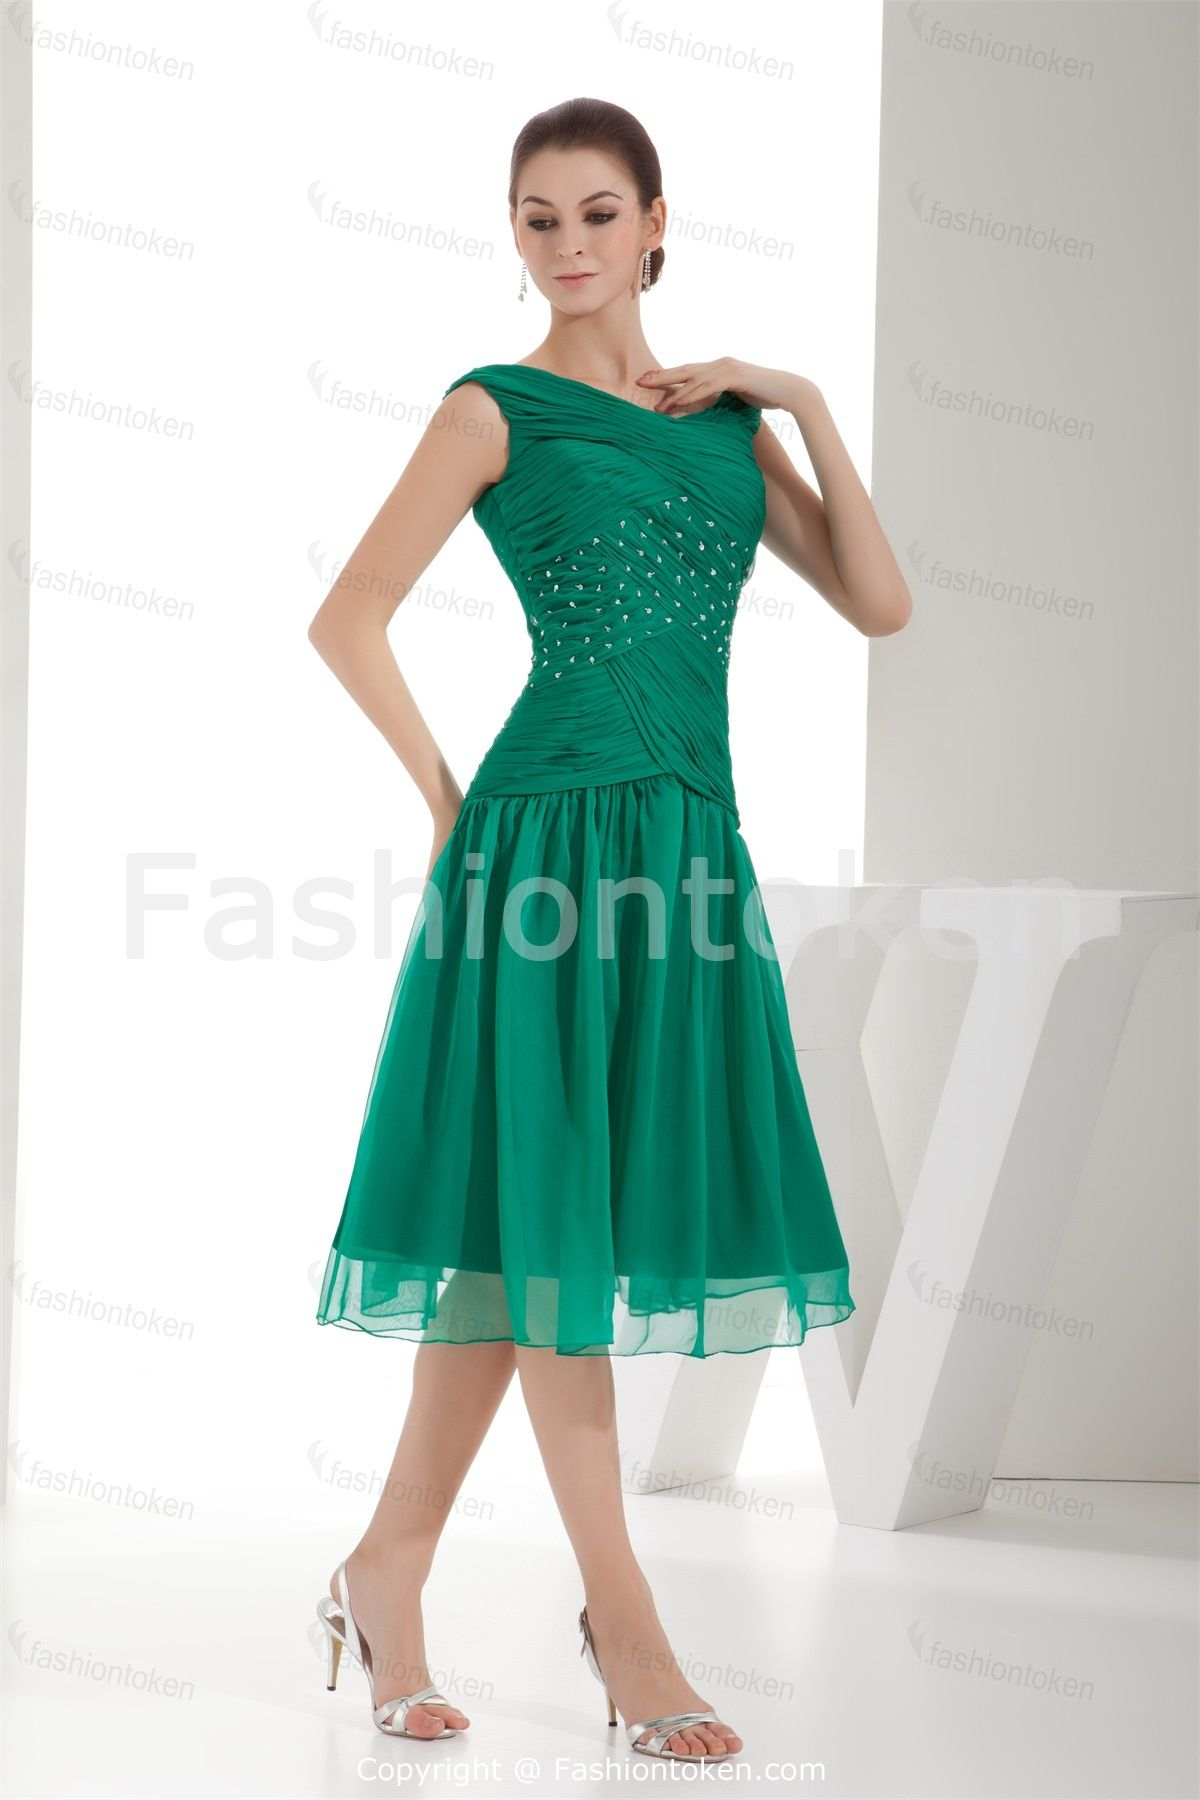 A-line cocktail dresses for mother of bride or groom